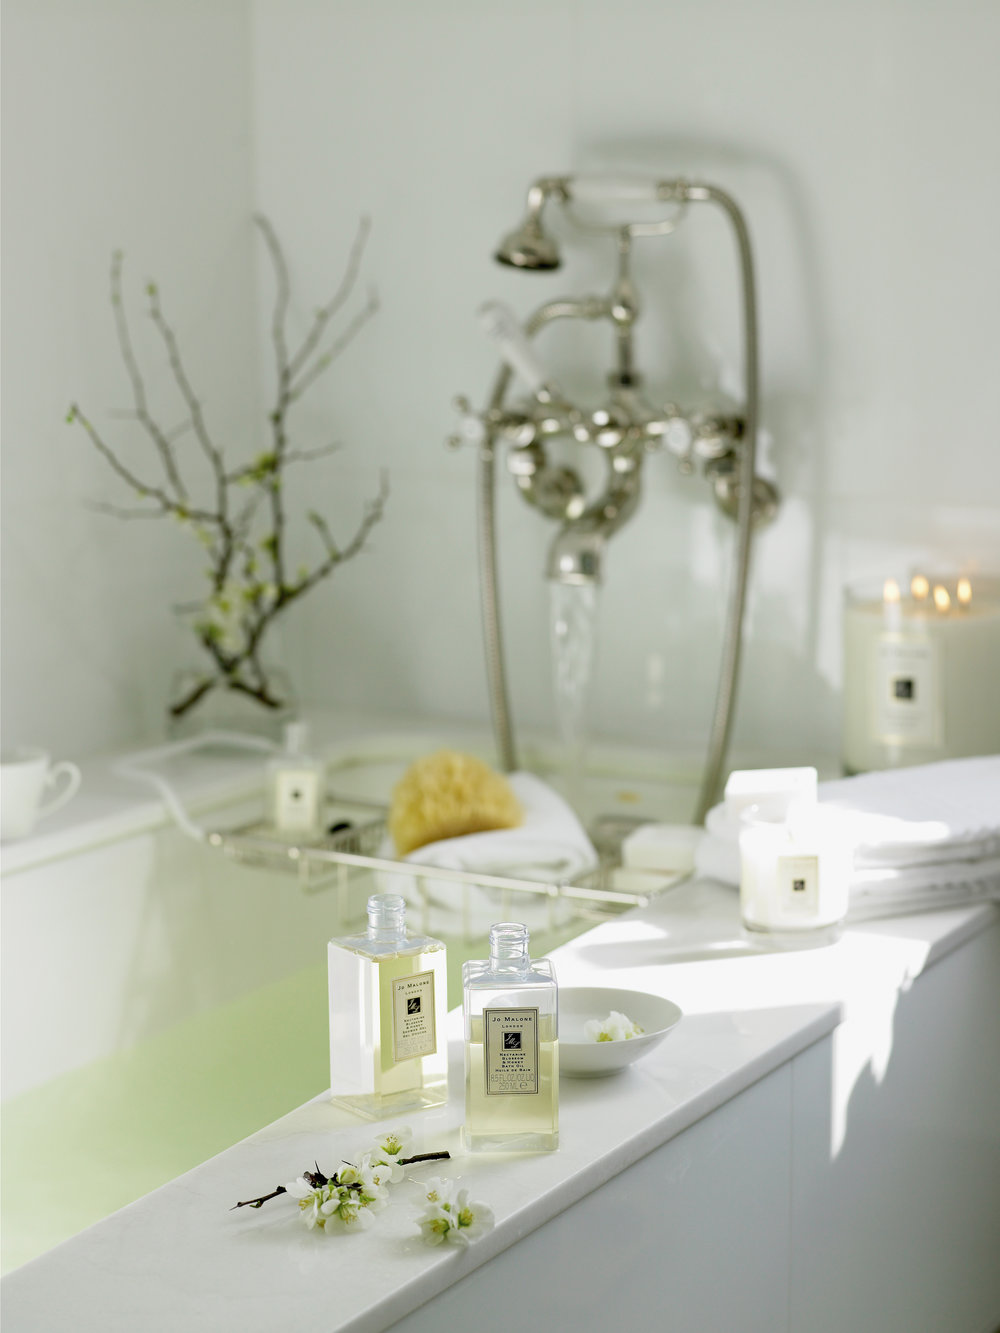 JoMalone_bathcollection.jpg